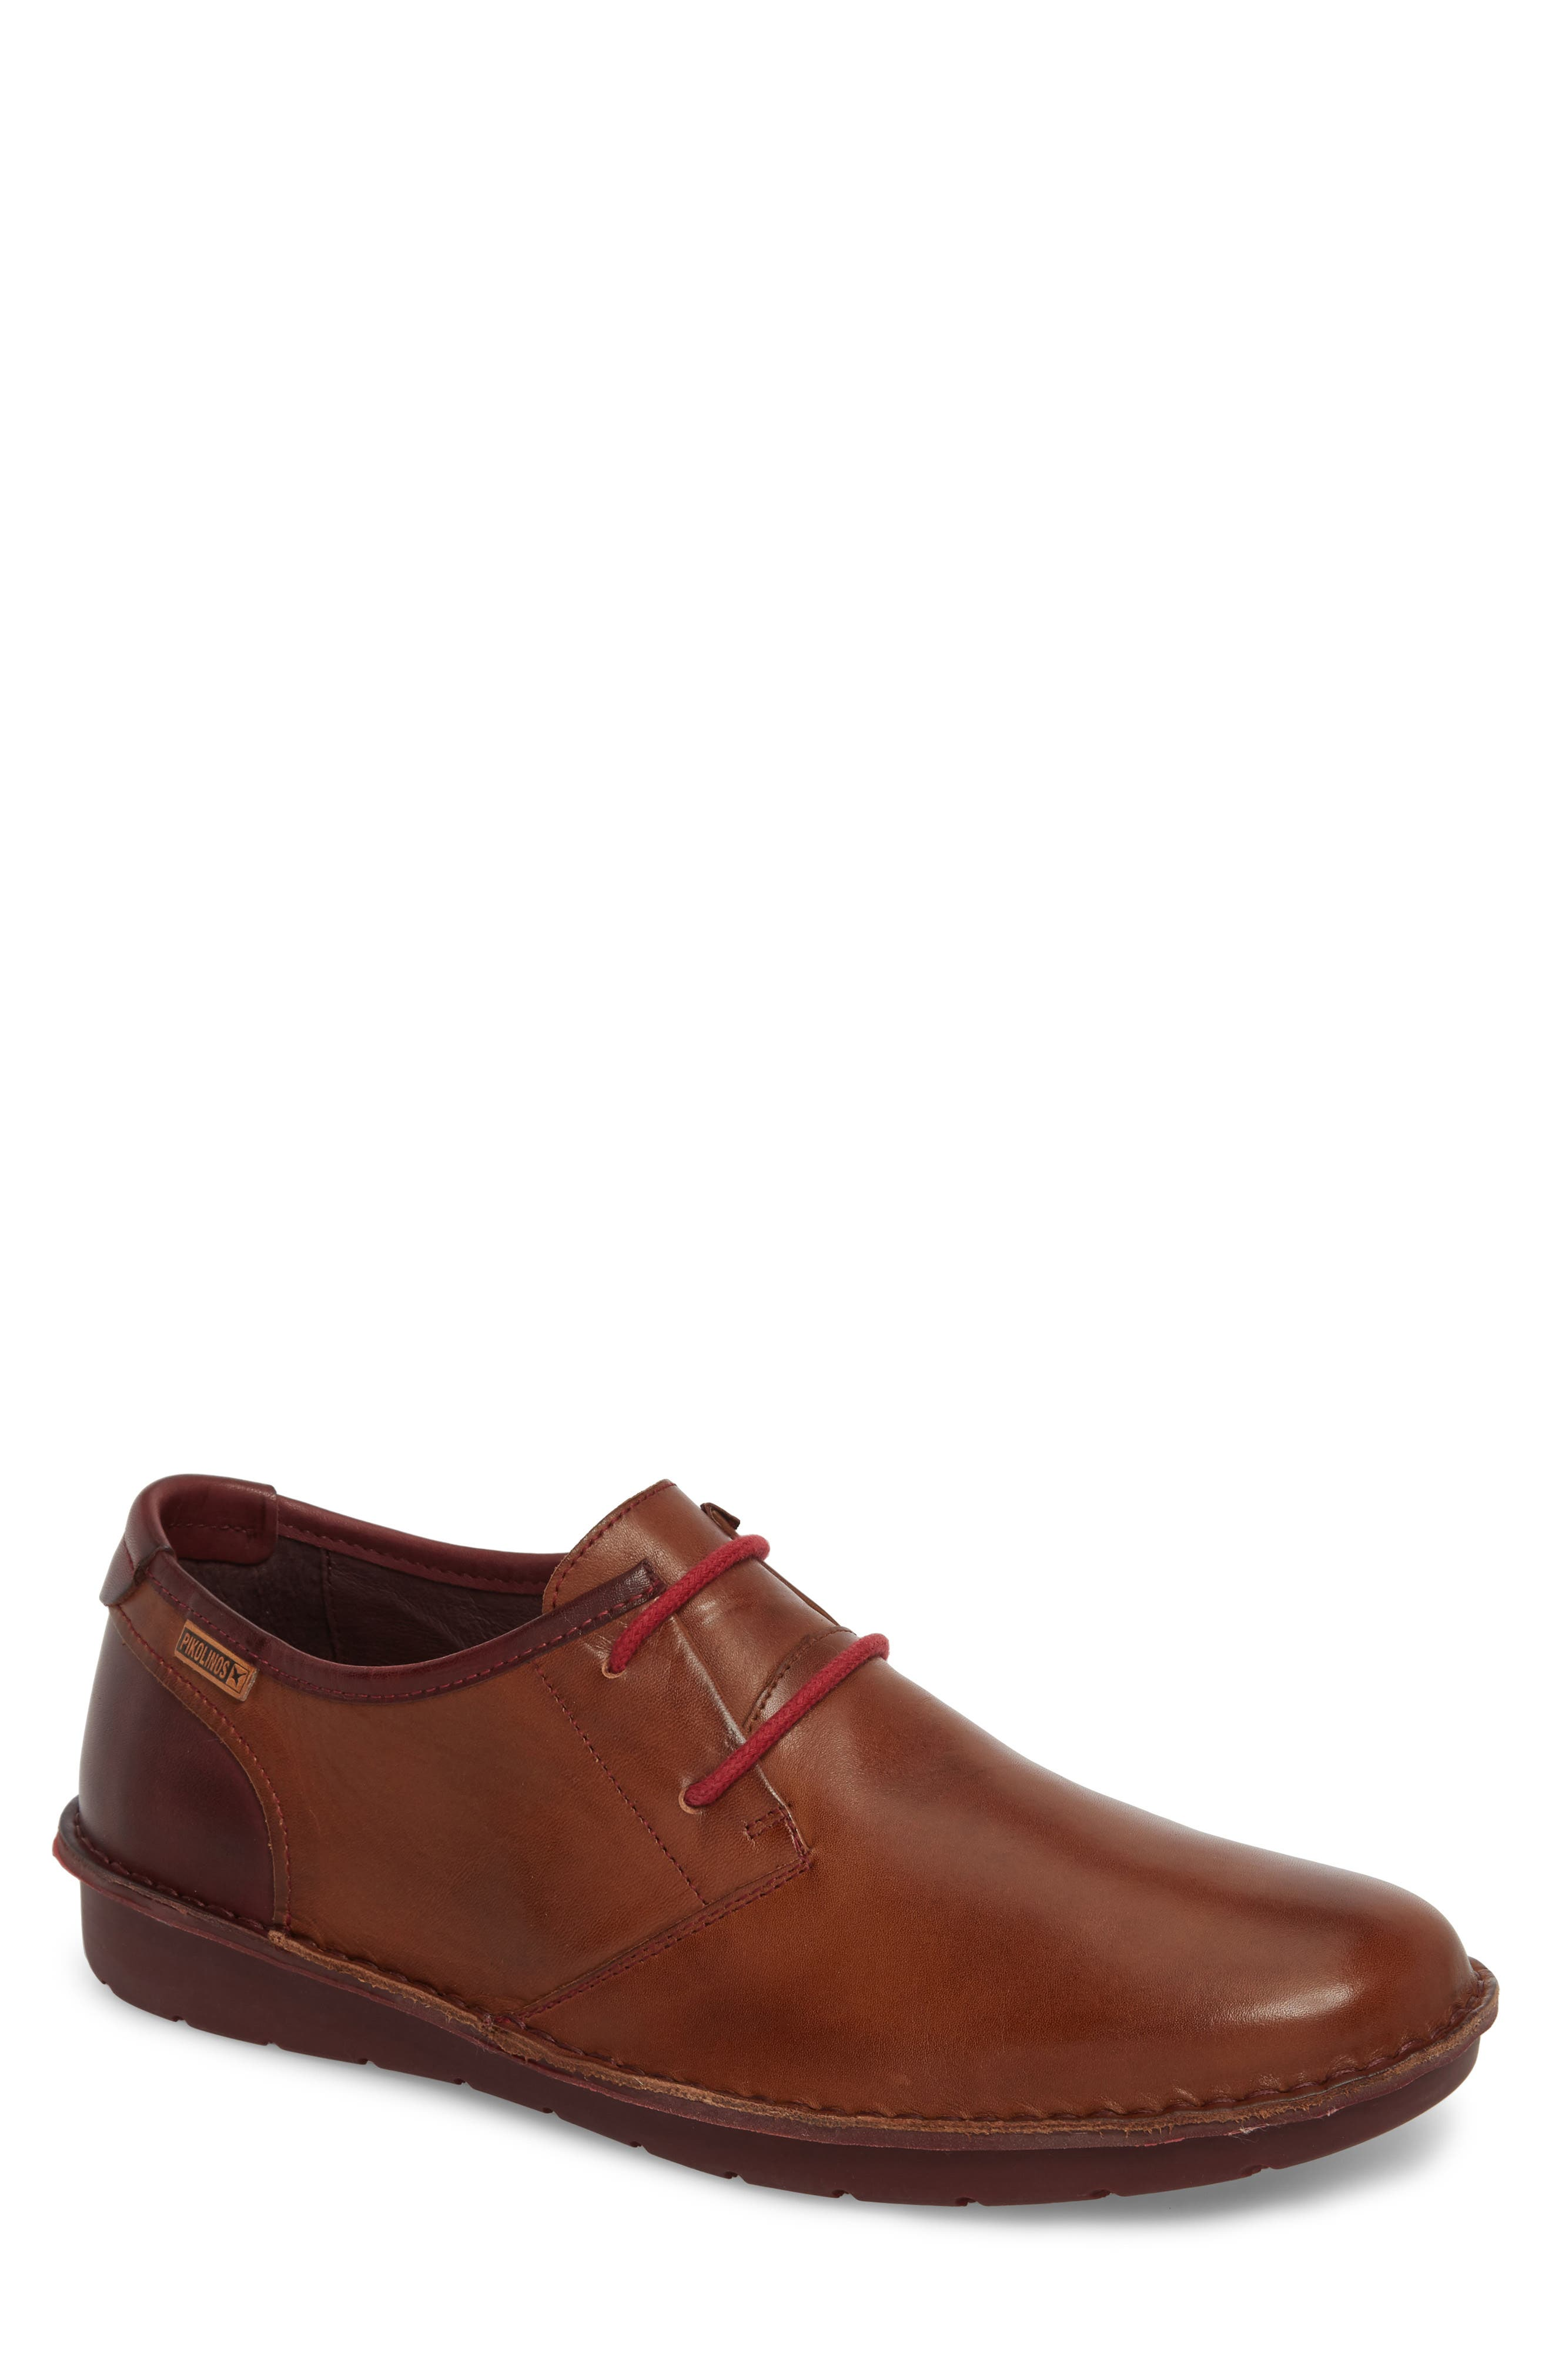 'Santiago' Plain Toe Derby,                             Main thumbnail 1, color,                             Cuero Leather